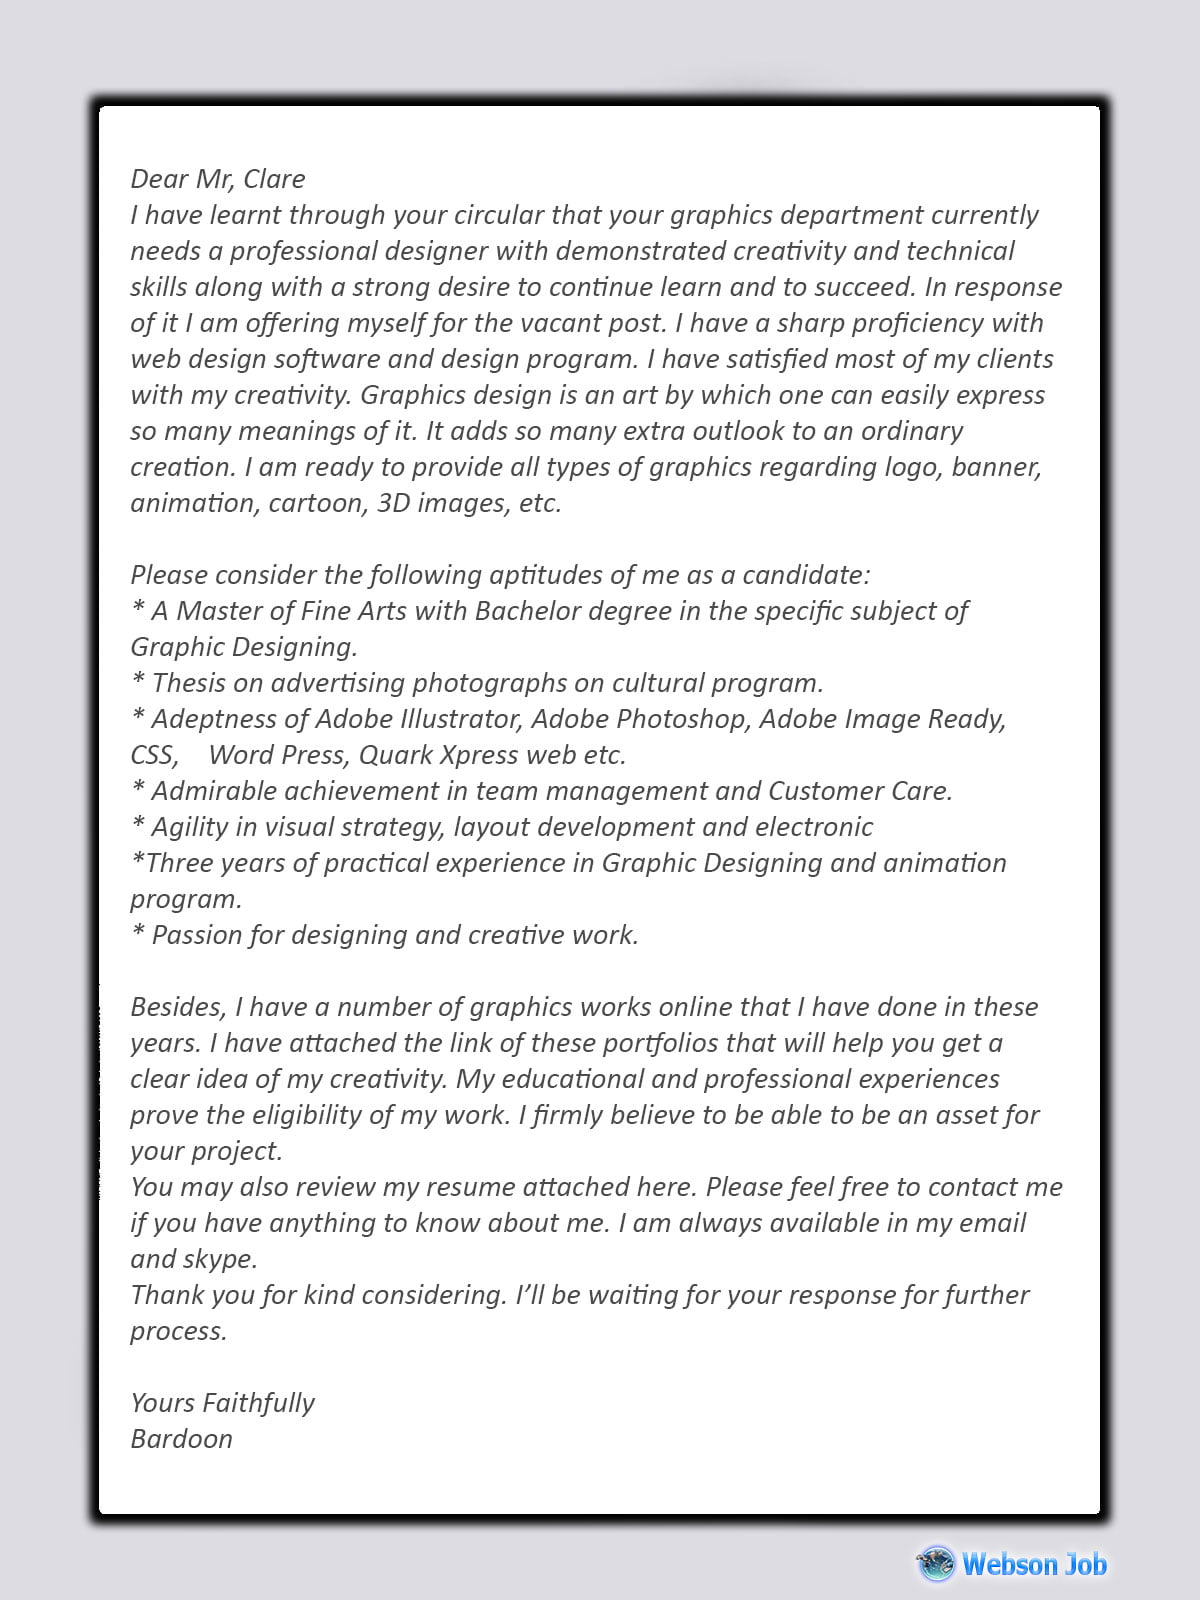 cover letters for graphic design jobs - graphics designer cover letter sample and format for